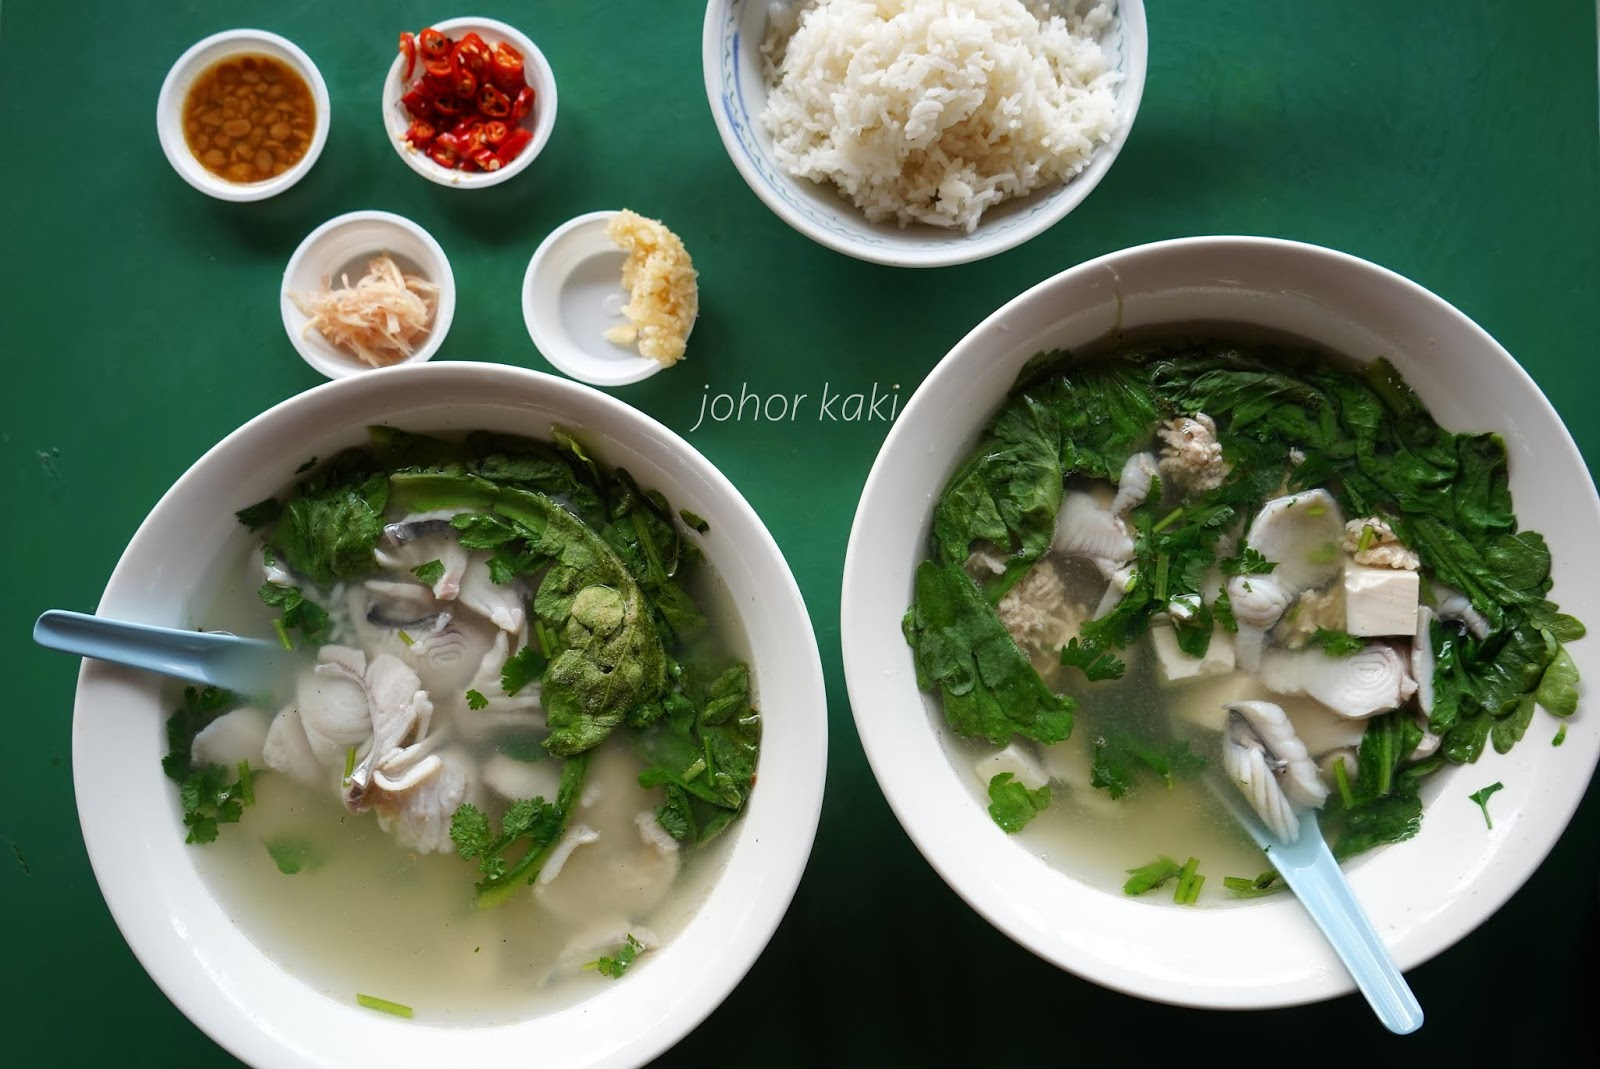 Which Is The Most Popular Fish Soup Stall Maxwell Food Centre Yi Jia Fish Soup If You Go By How People Vote With Their Feet Johor Kaki Travels For Food